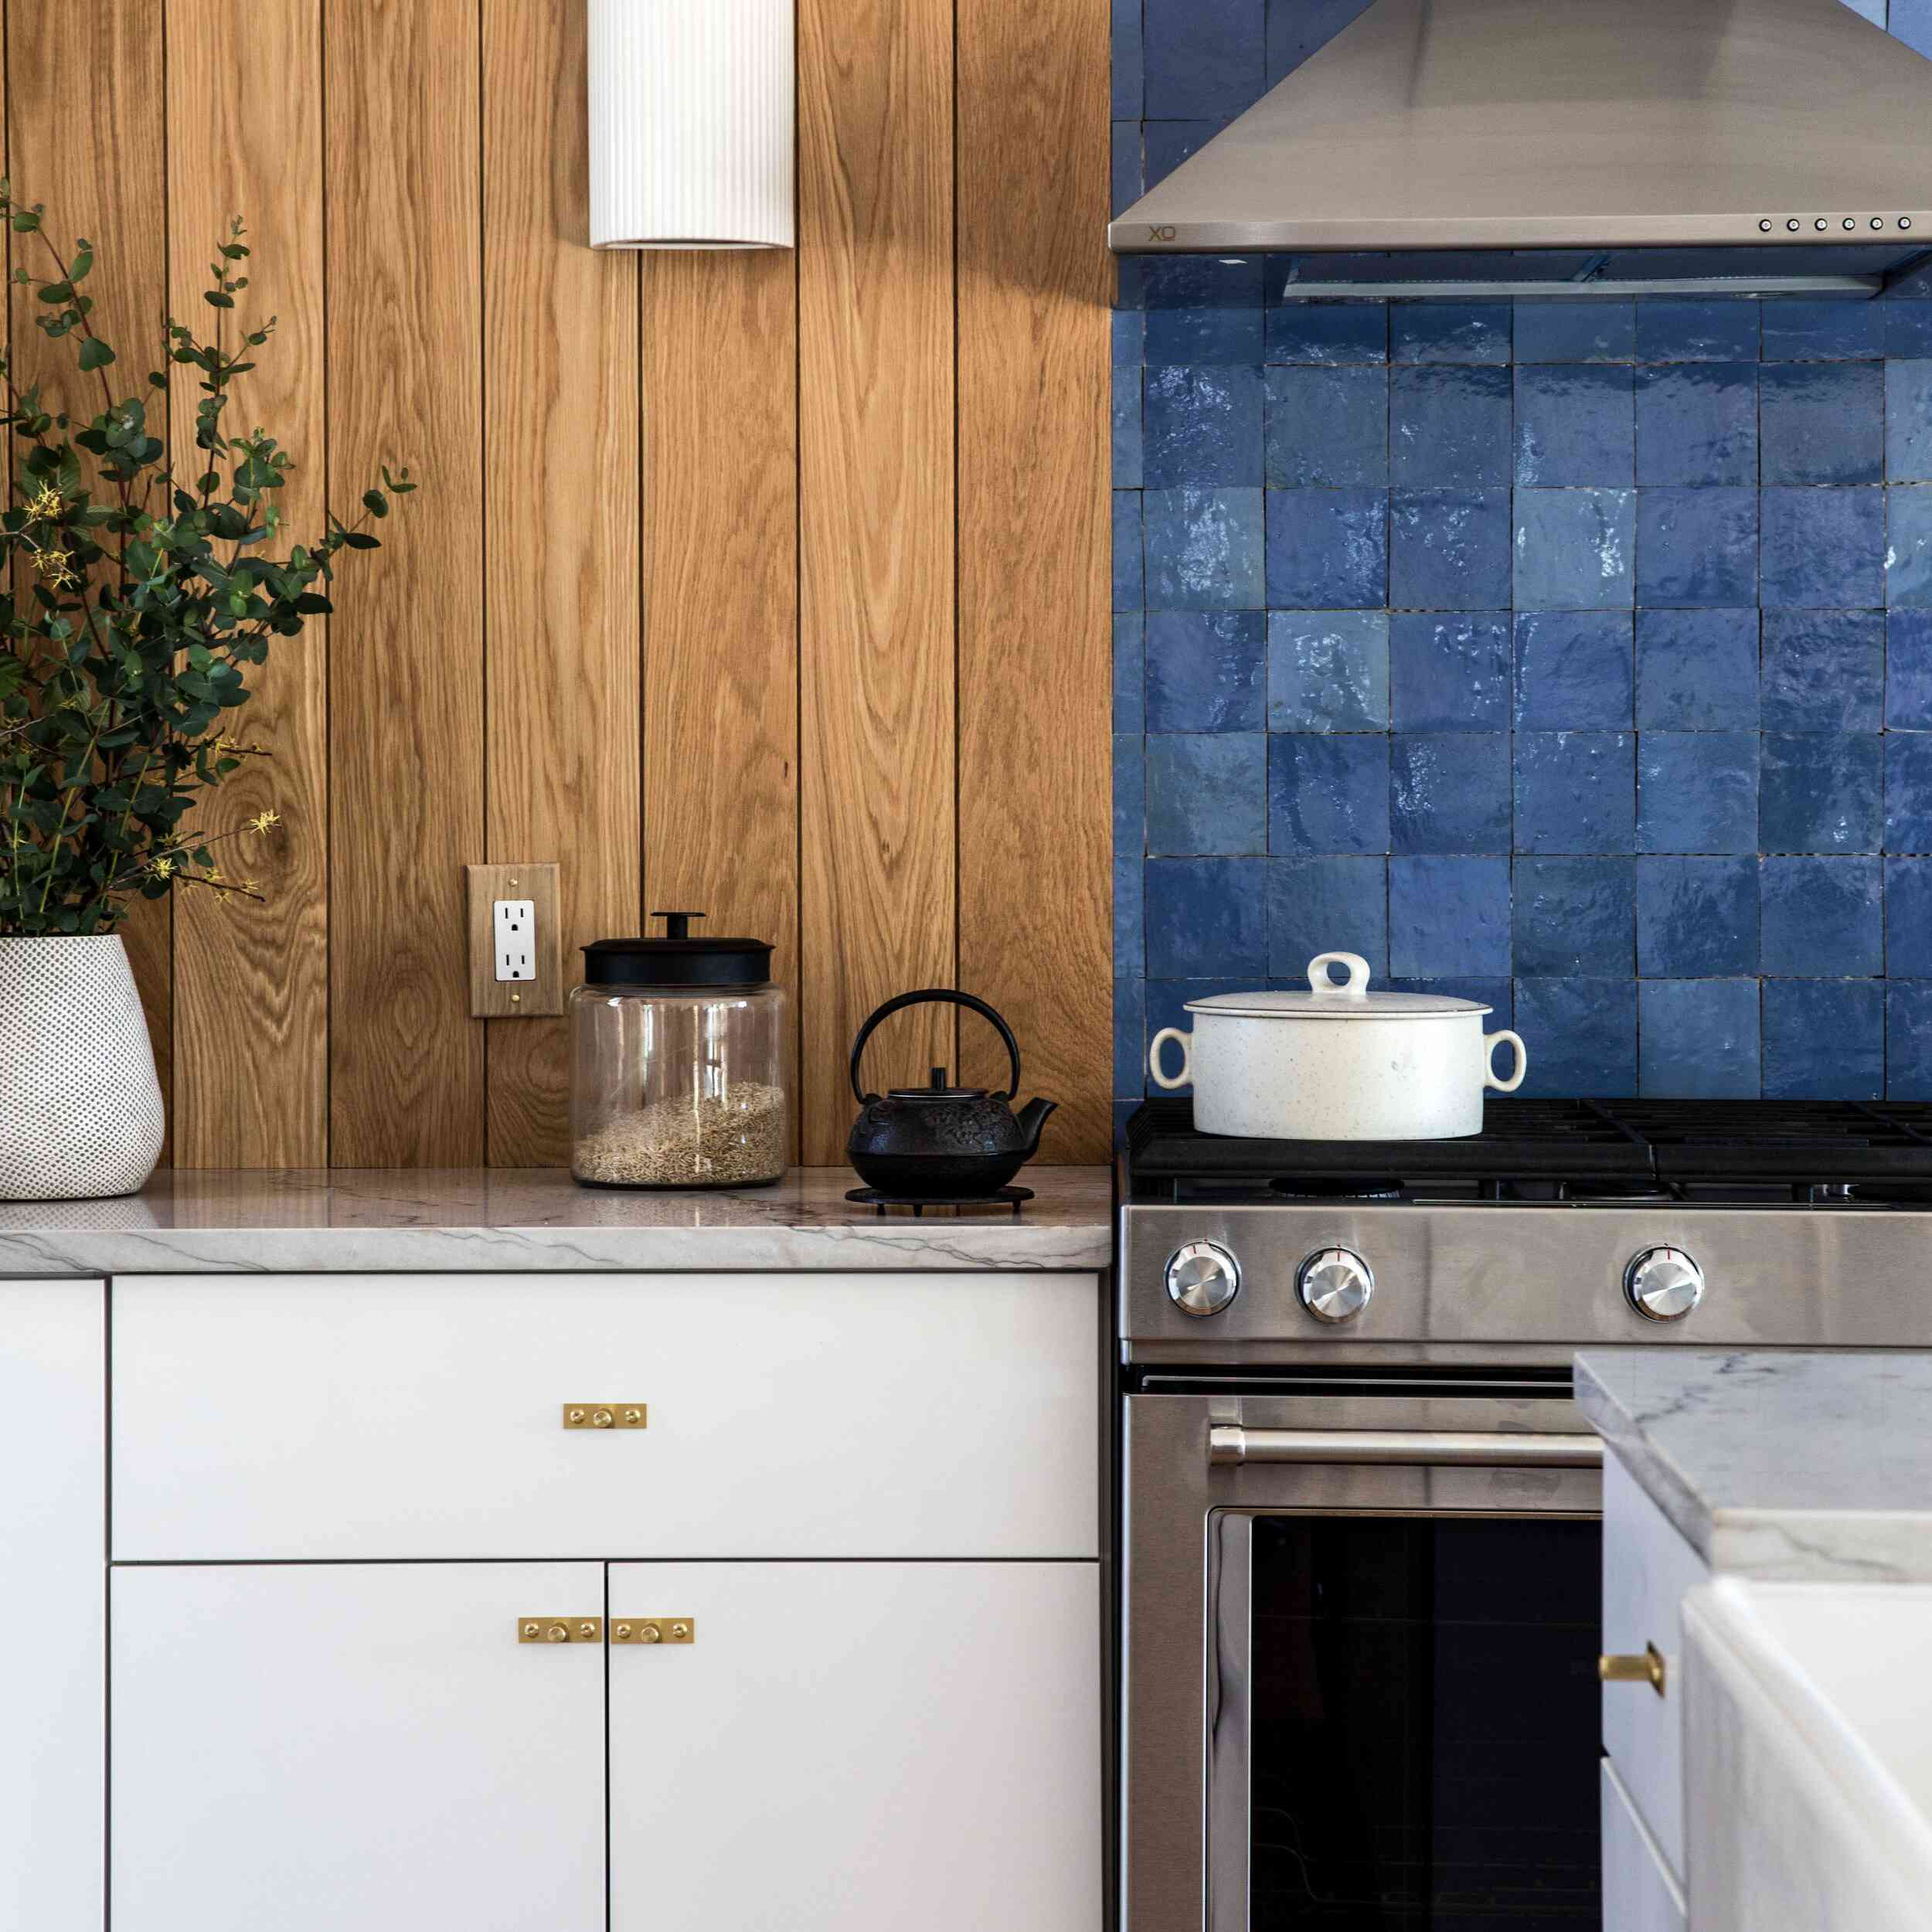 A wood-lined kitchen with white cabinets and a bold blue backsplash